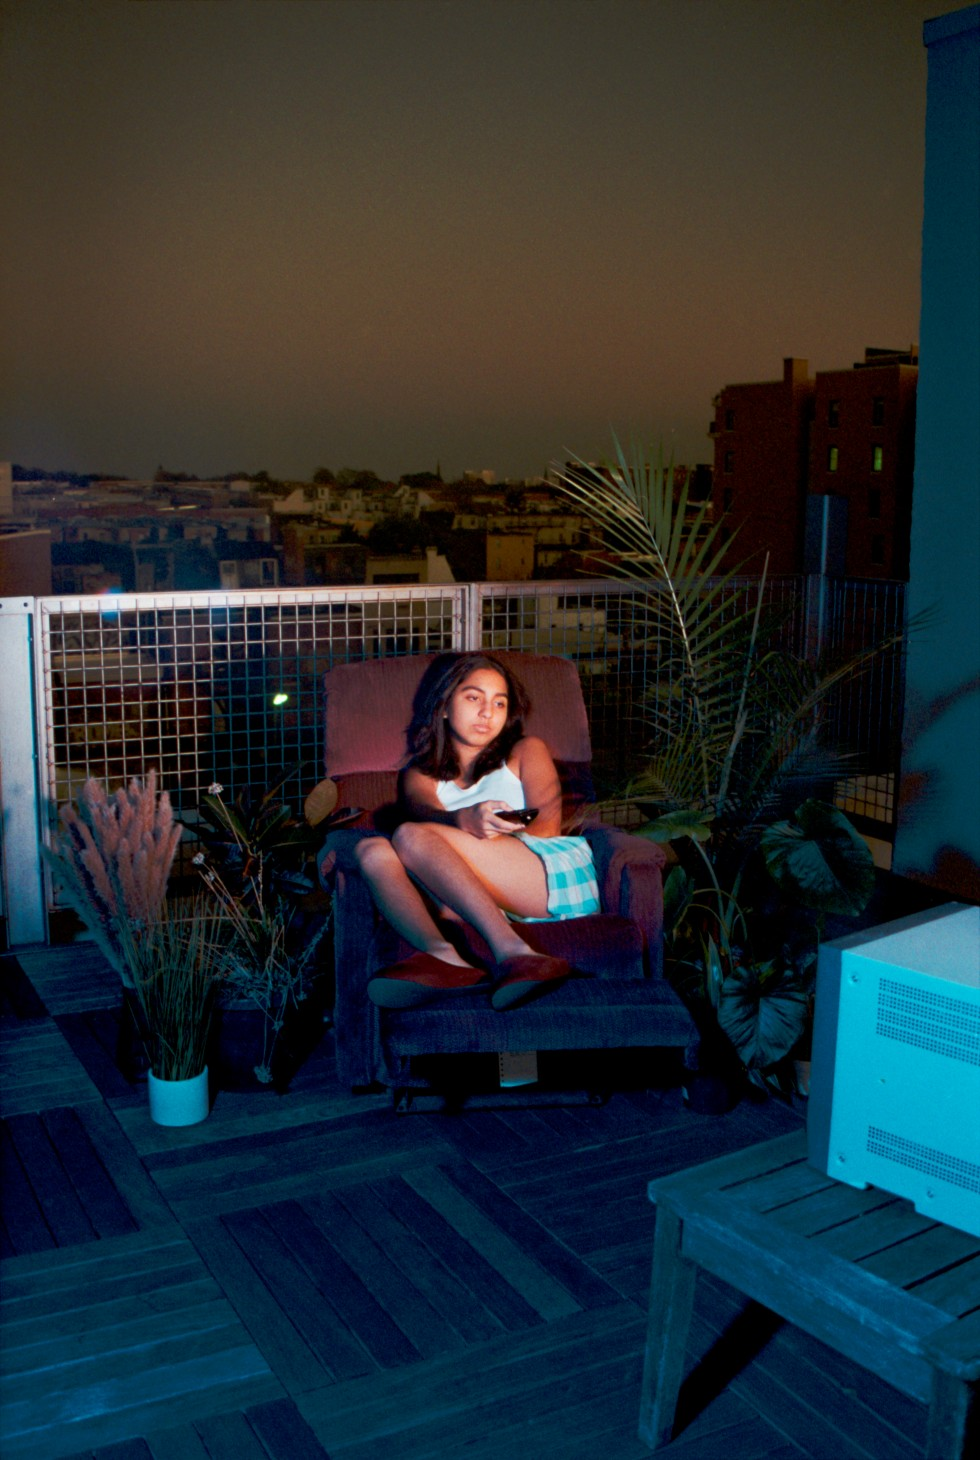 A person sitting in a recliner watching TV on a rooftop